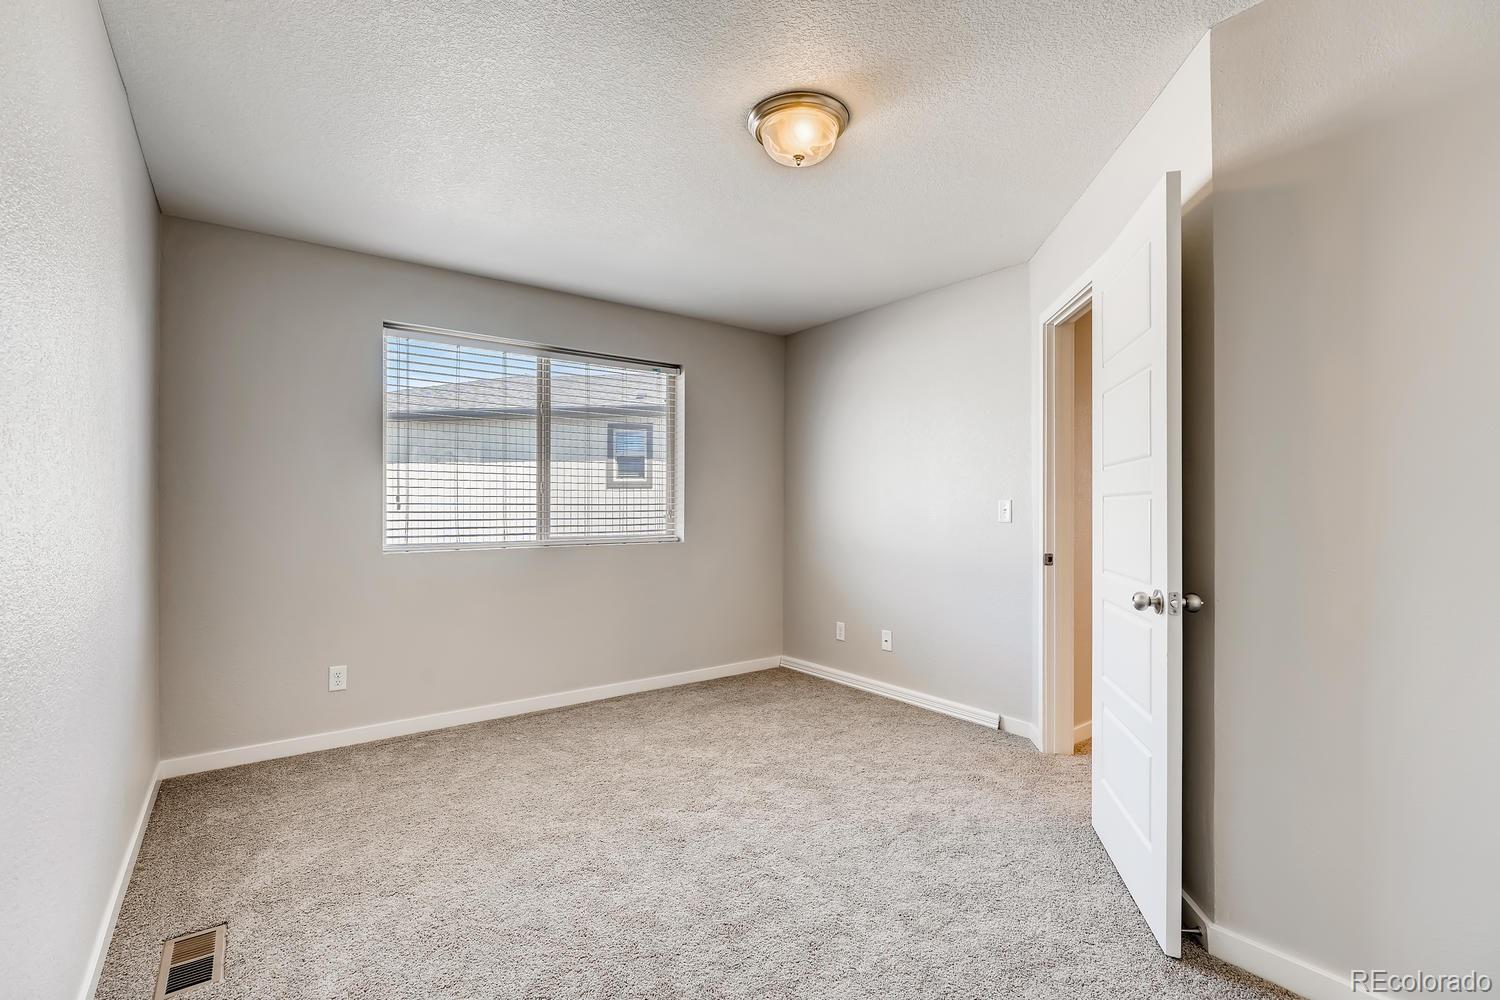 MLS# 8359032 - 18 - 5226 Andes Street, Denver, CO 80249